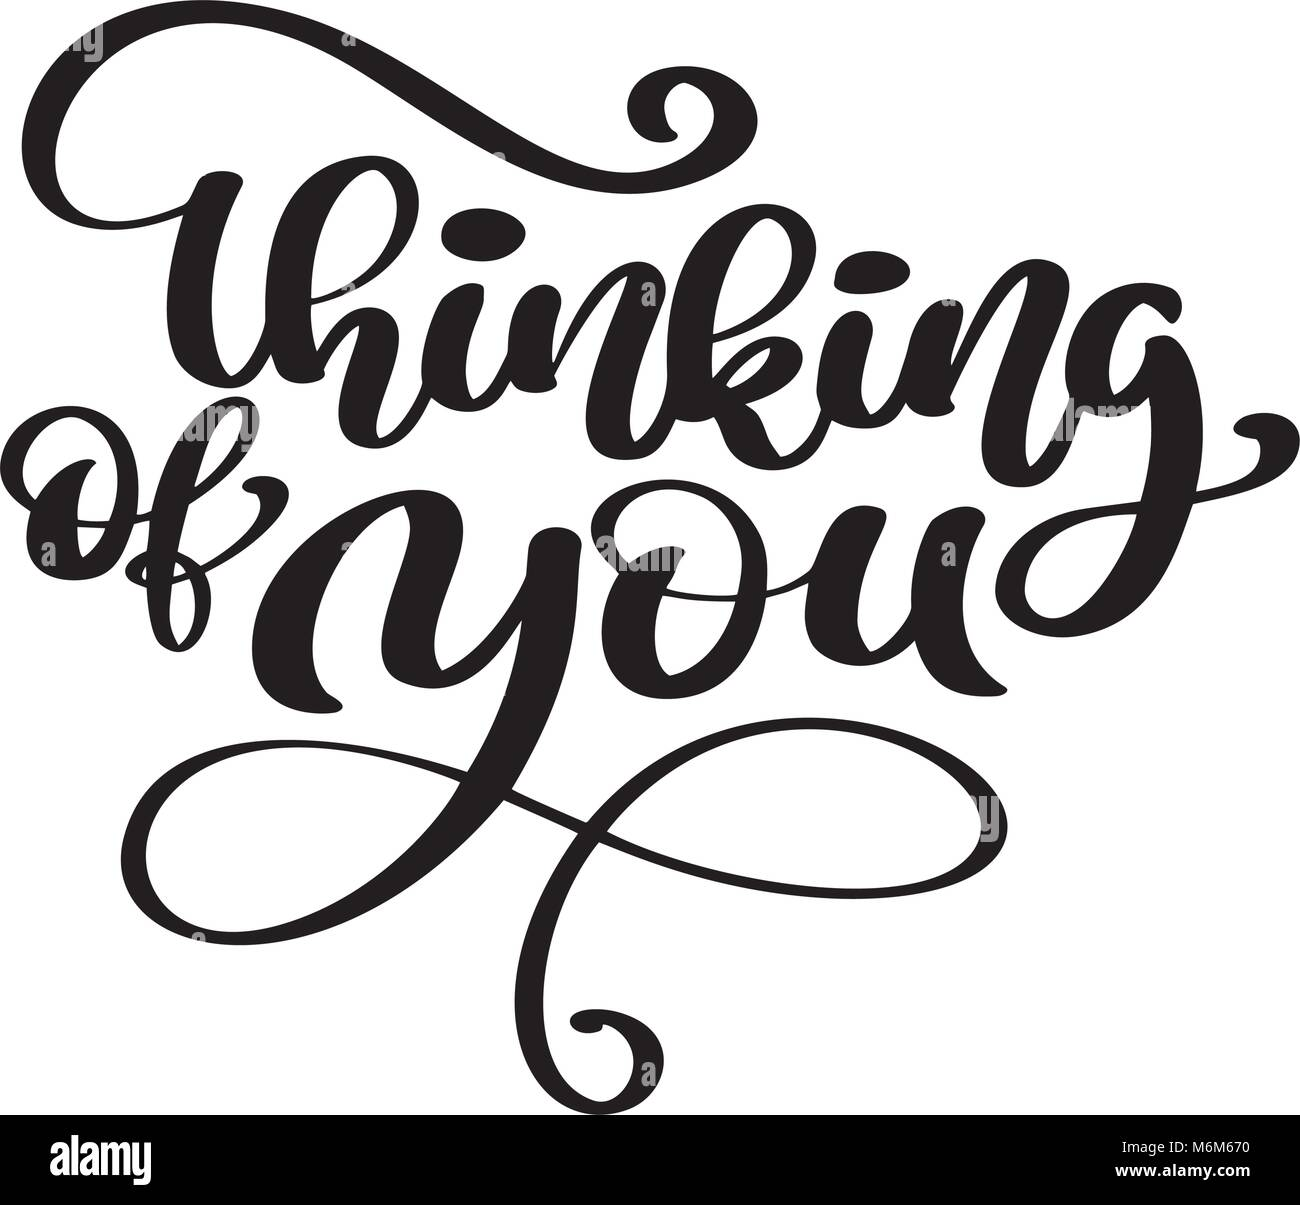 Vector Calligraphy Thinking Of You Hand Drawn Text Phrase Poster Or